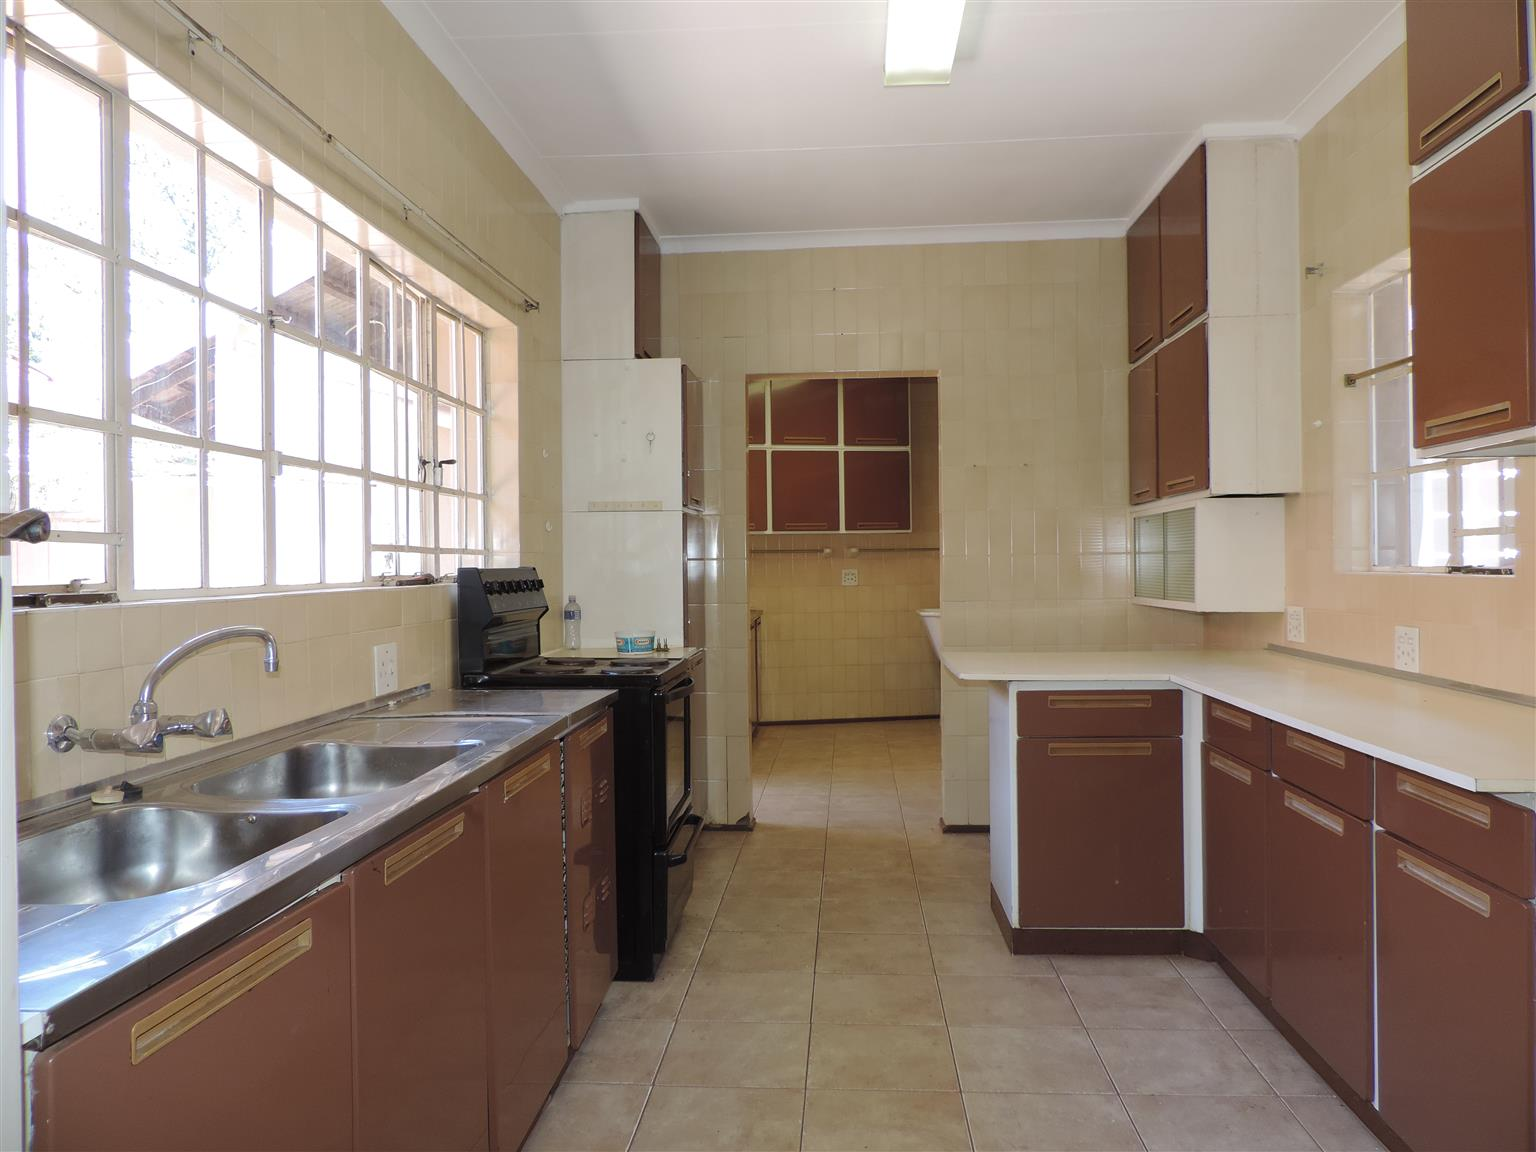 AFFORDABLE SPACIOUS FAMILY HOME IN ERASMUSRAND